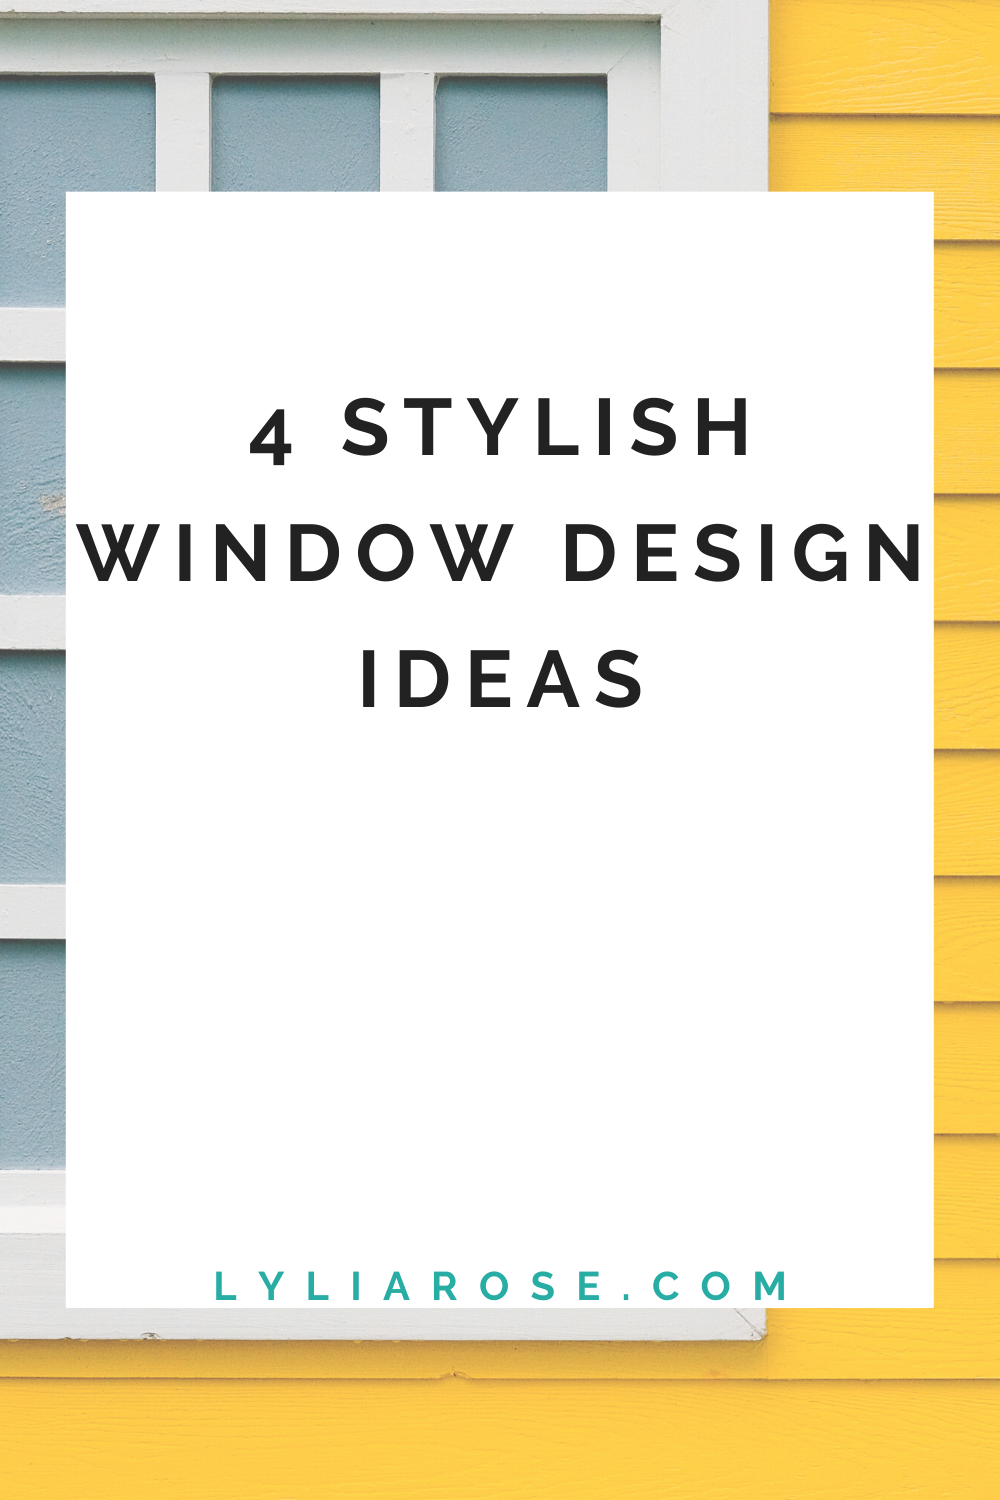 4 stylish window design ideas (1)